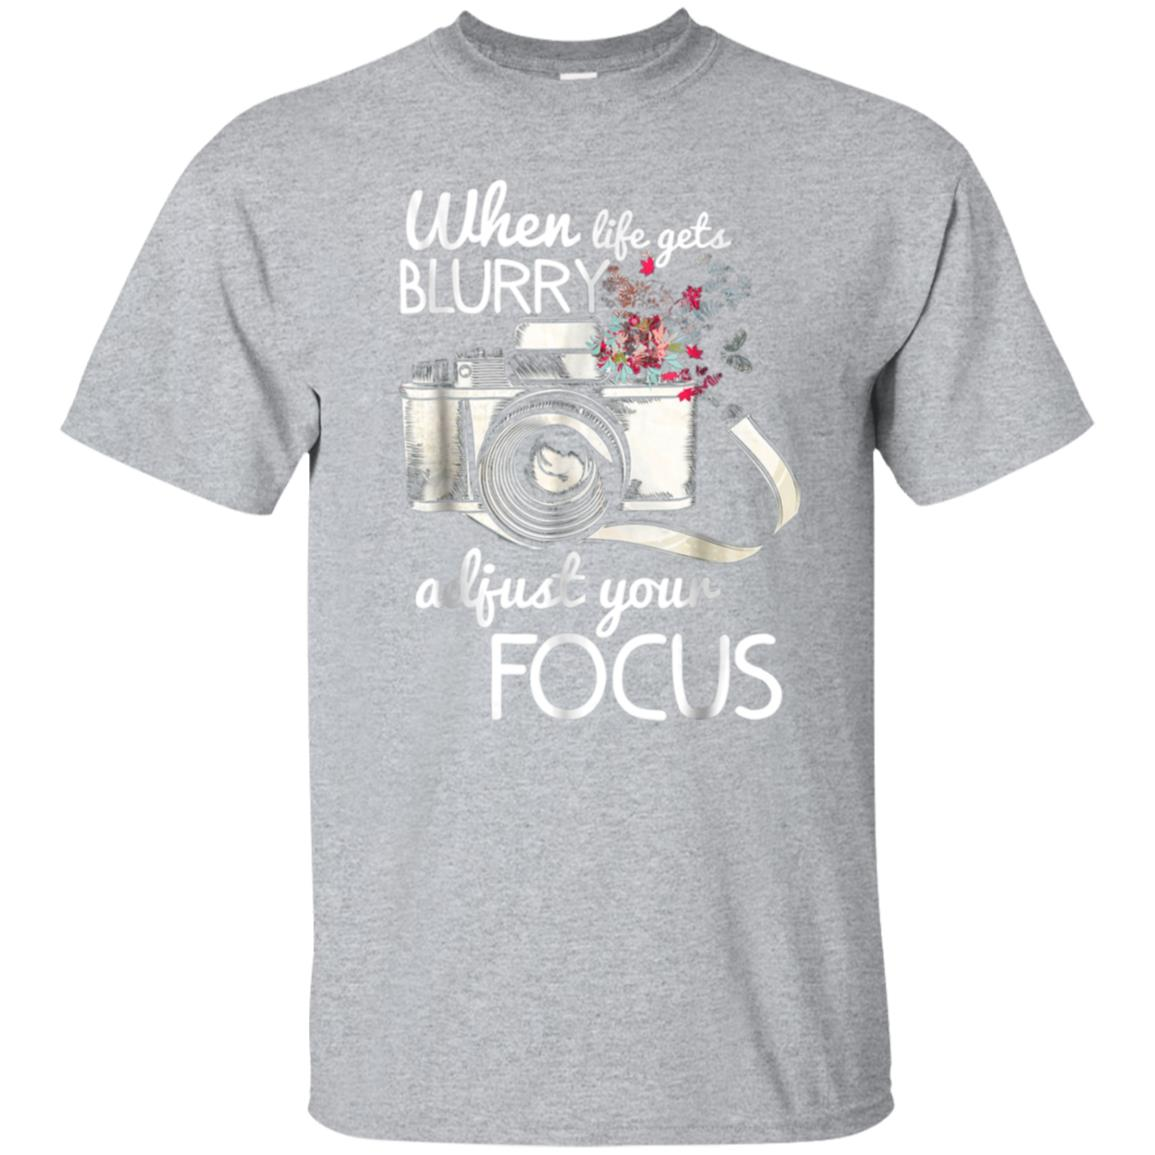 When Life Gets Blurry Adjust Your Focus Photography TShirt 99promocode